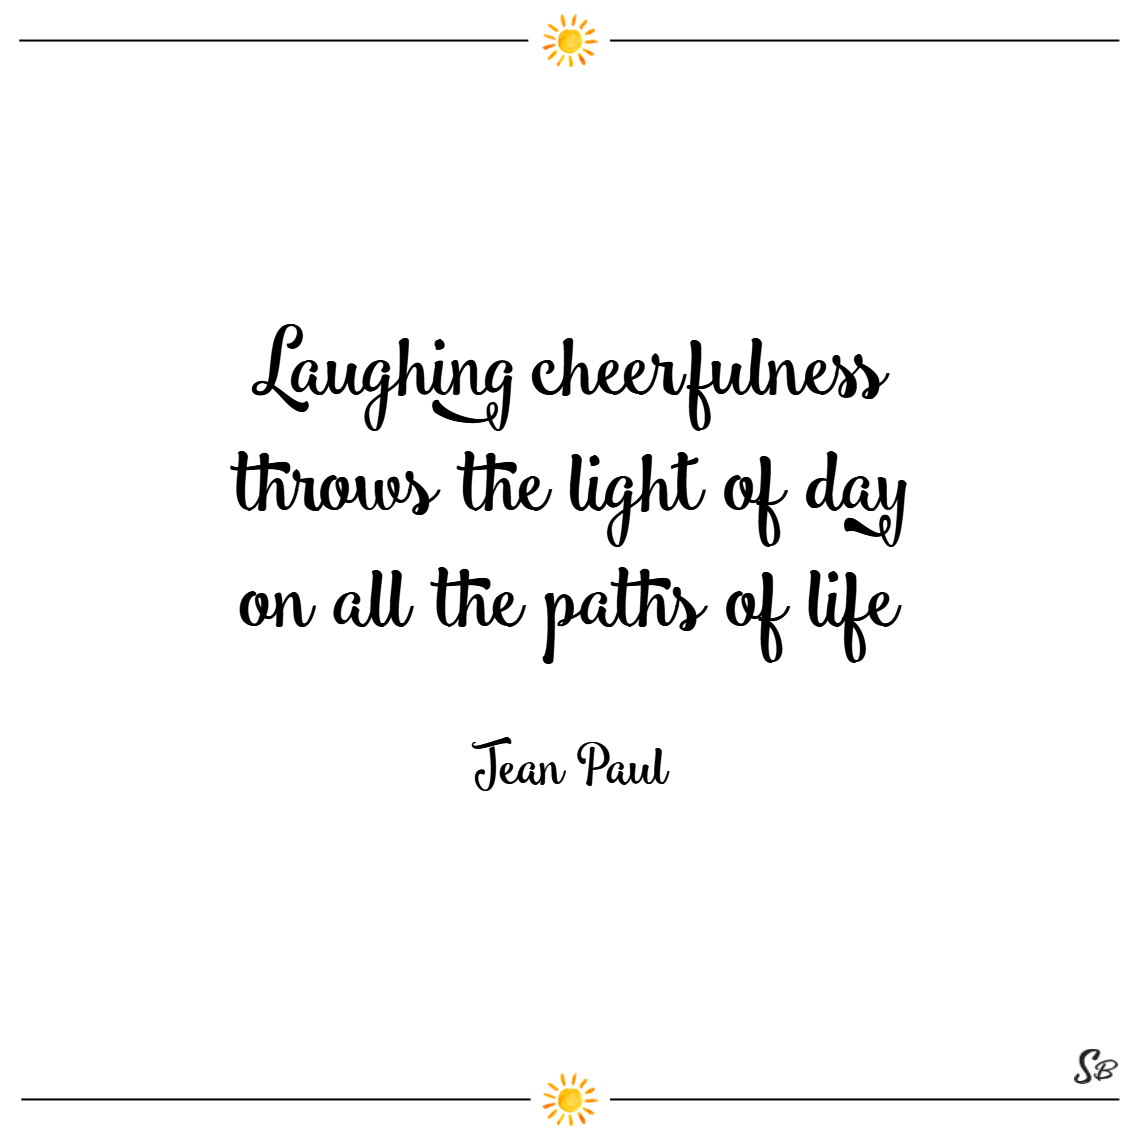 Laughing cheerfulness throws the light of day on all the paths of life. – jean paul